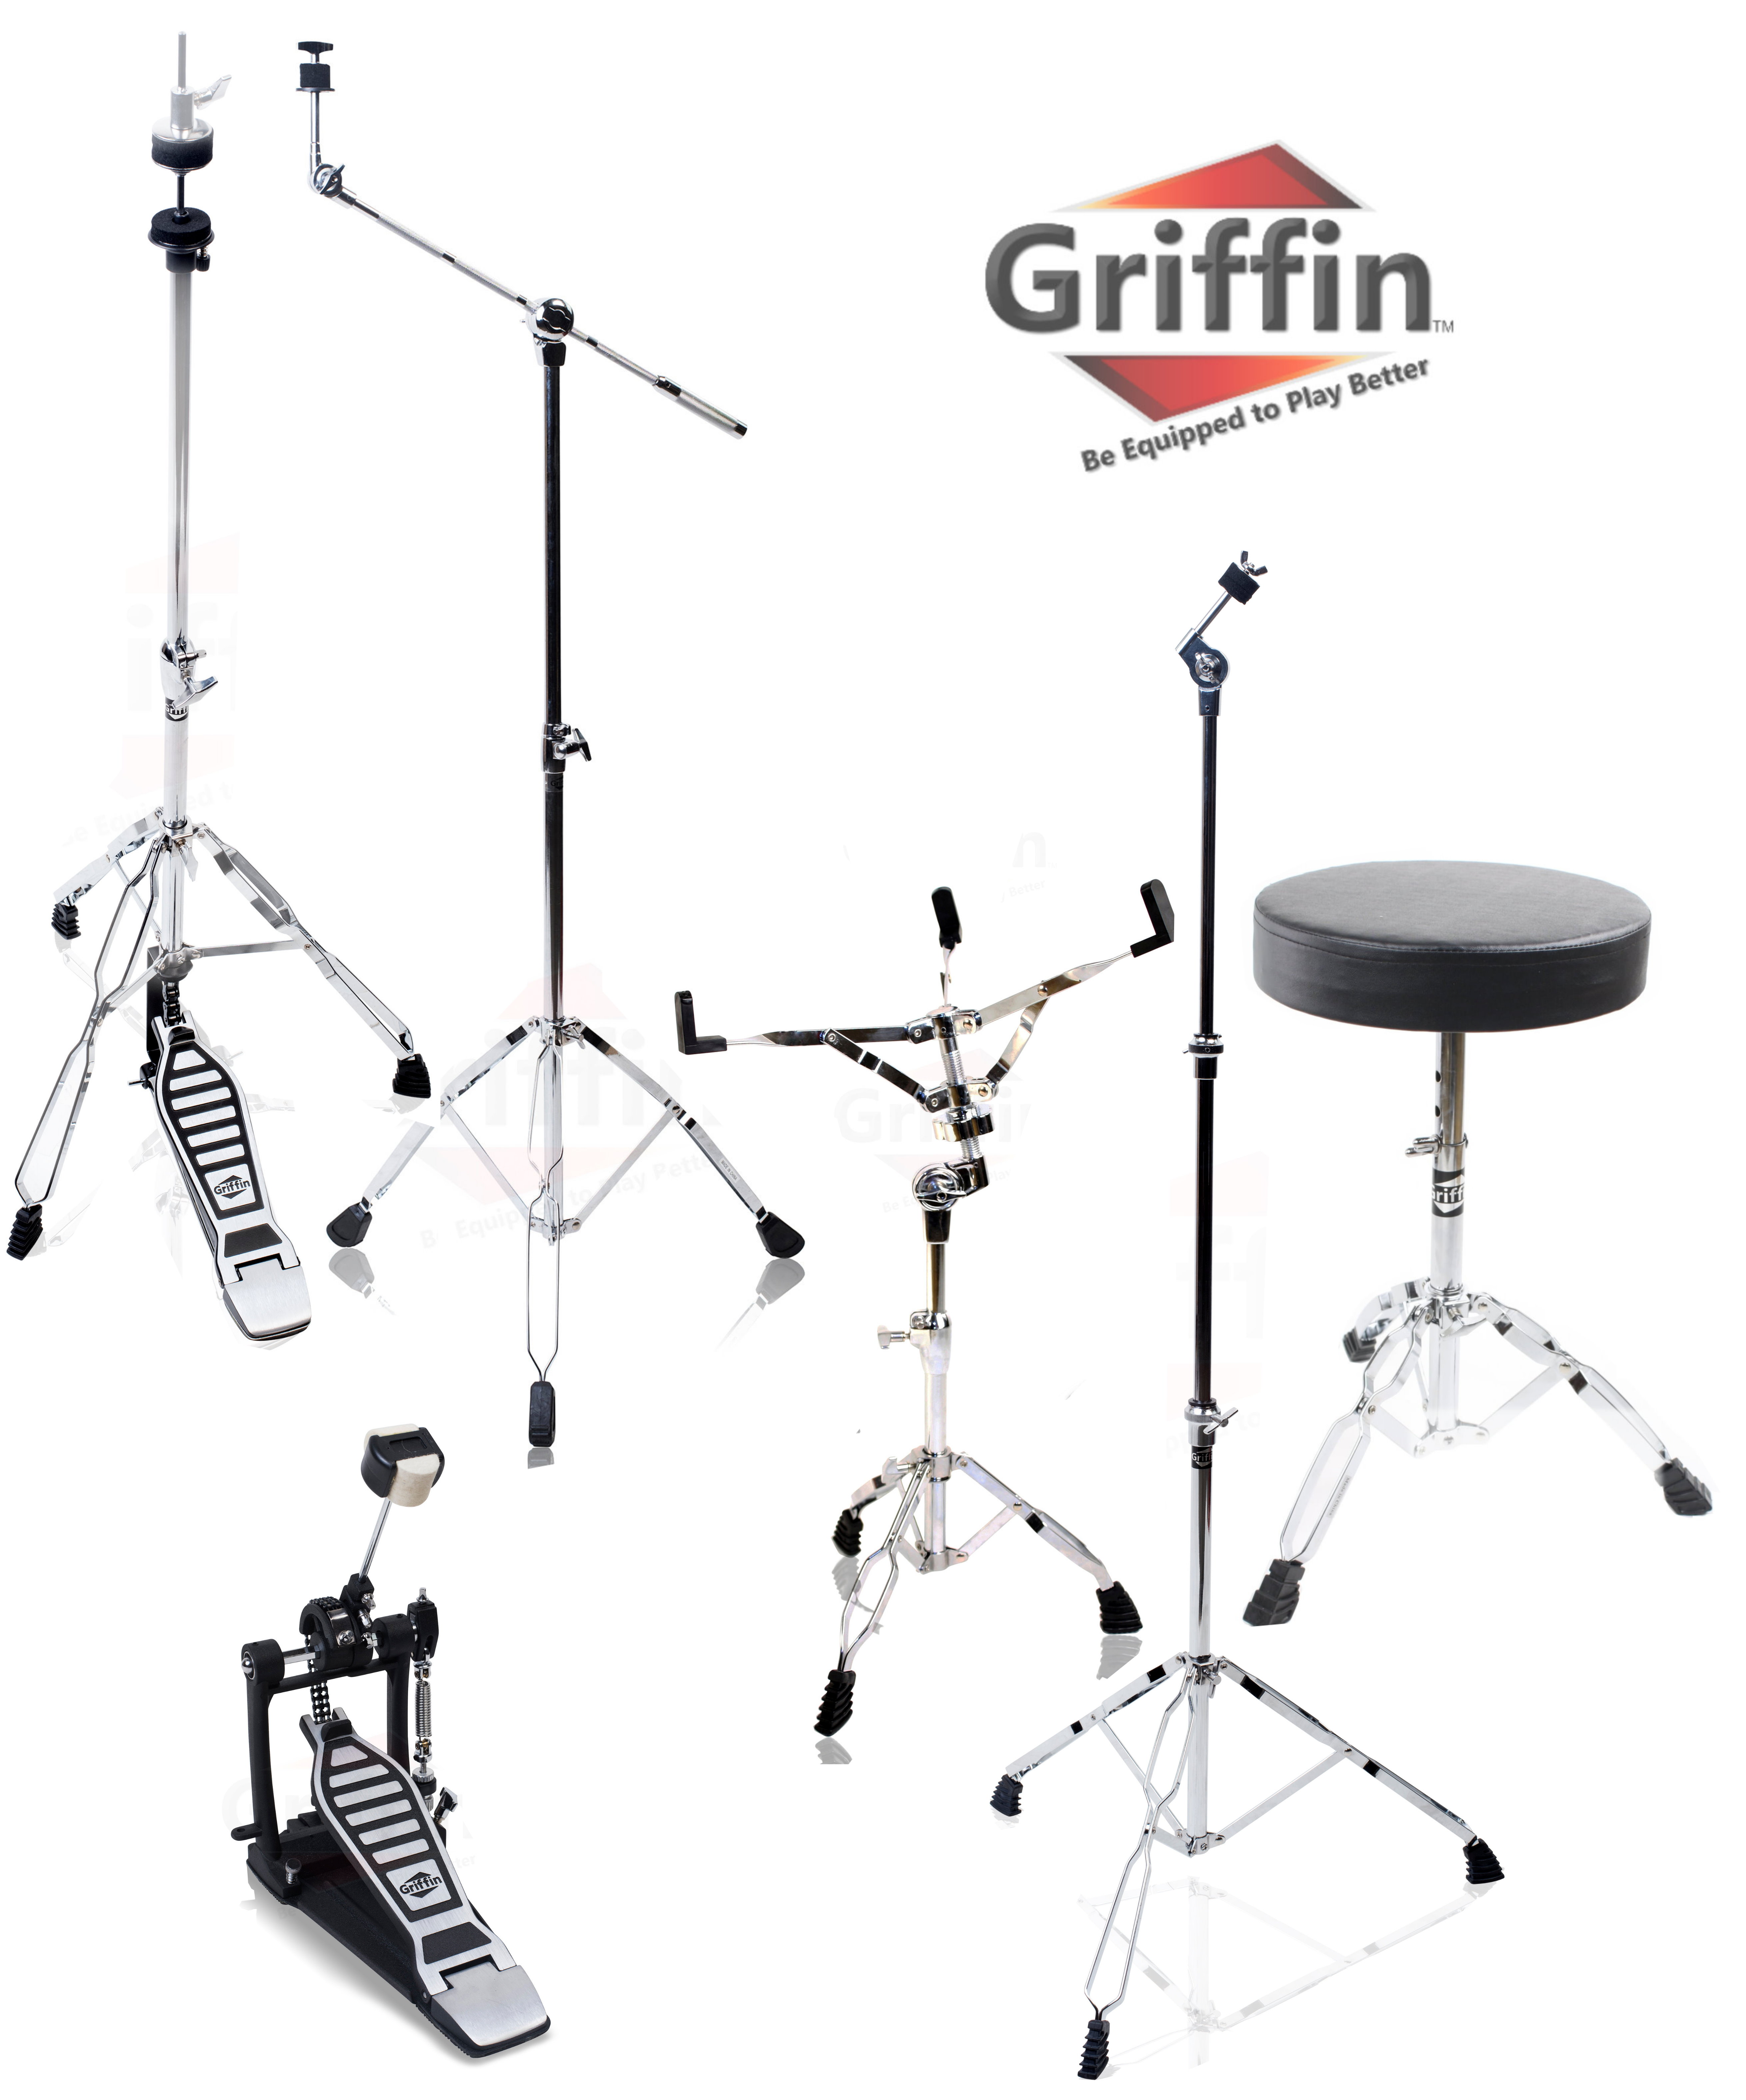 Complete Drum Hardware Pack 6 Piece Set by Griffin Full Size Percussion Stand Kit with... by Griffin